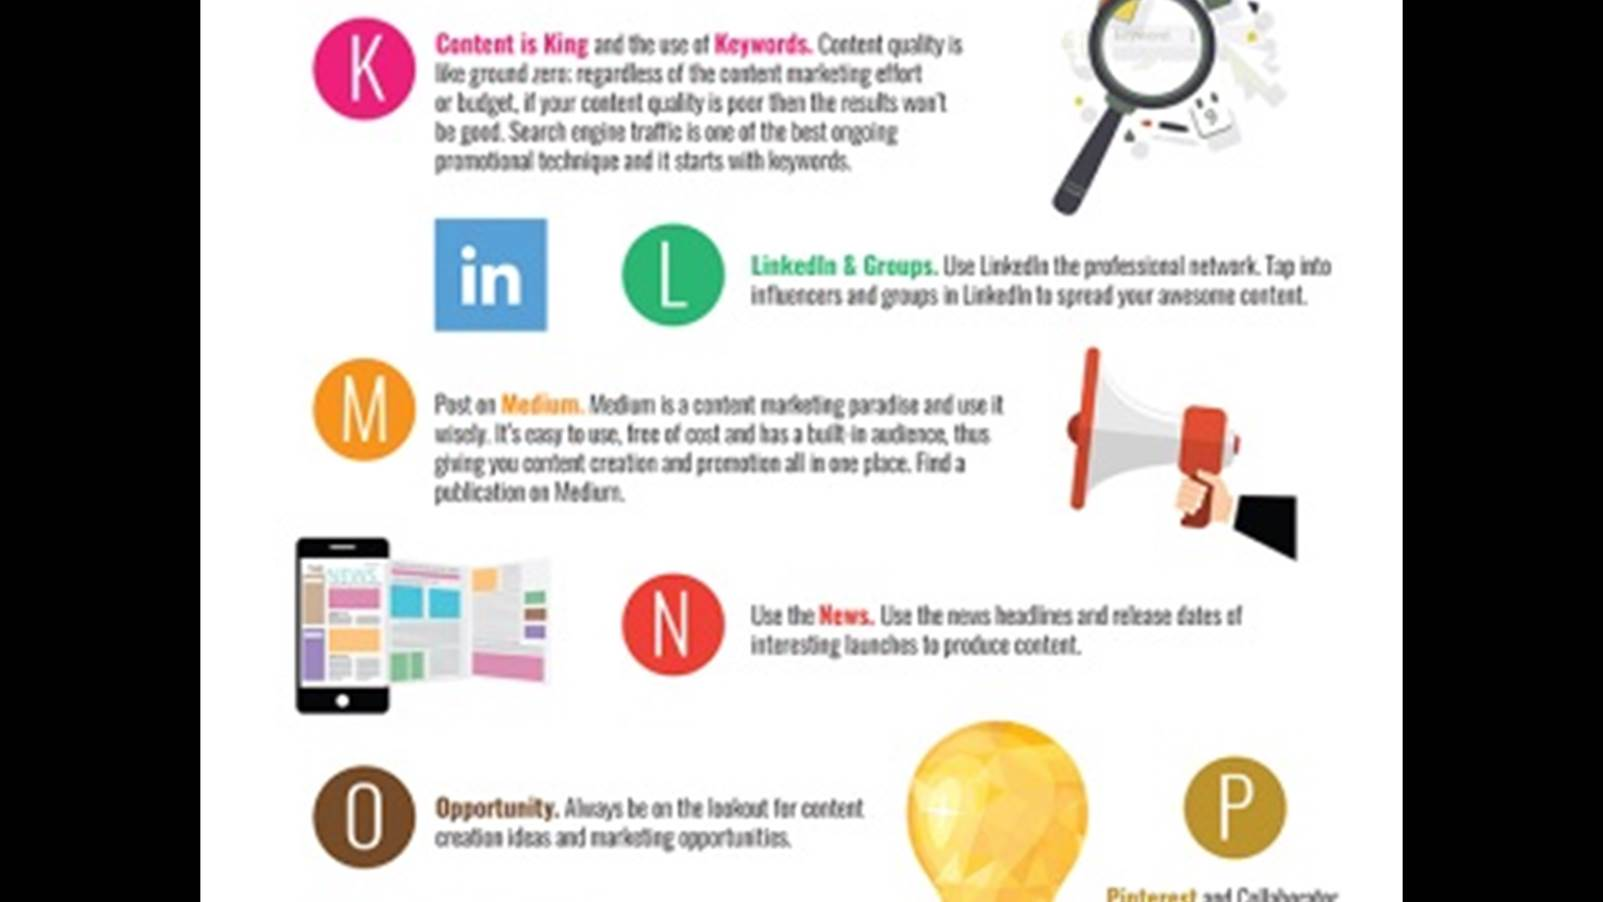 Excerpt - 40 point content marketing checklist infographic by Page Traffic